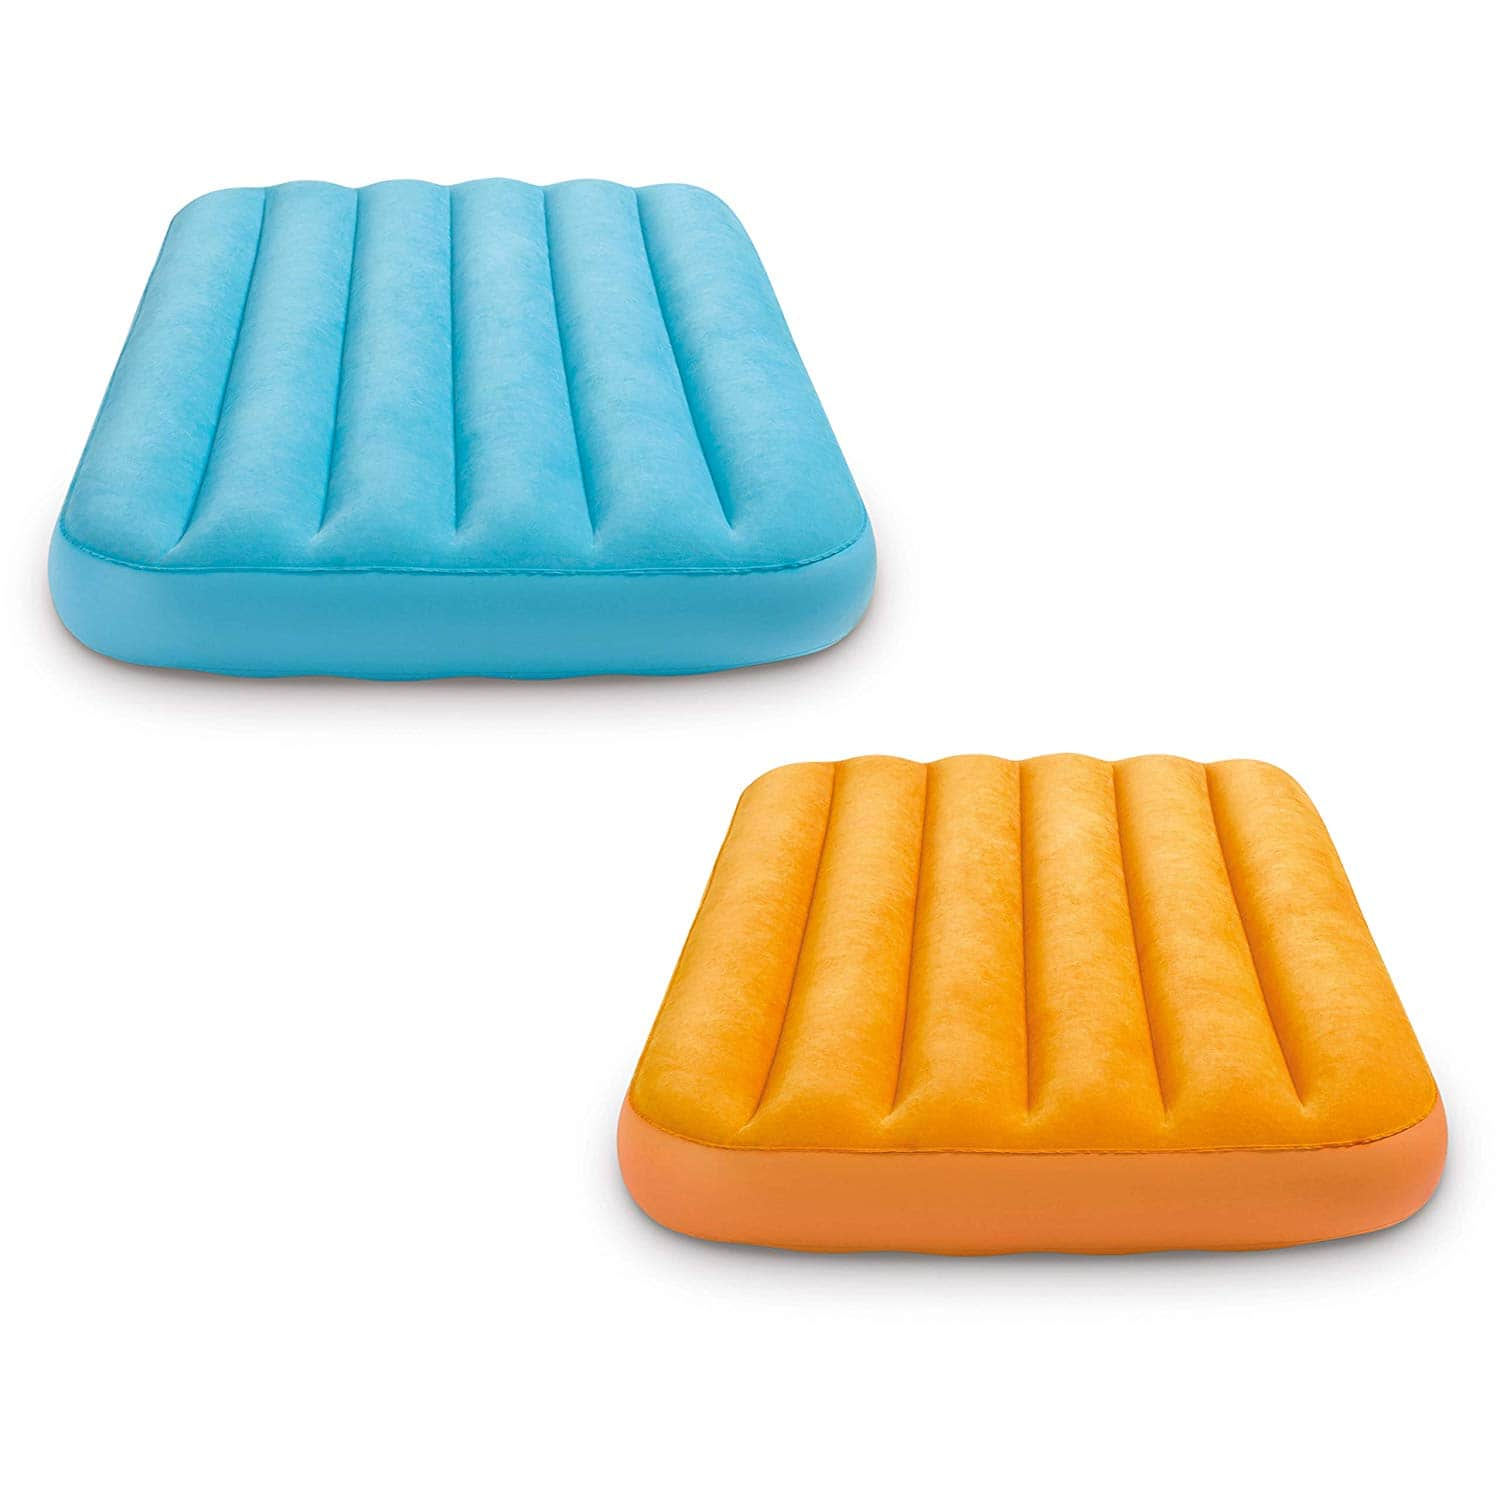 """Intex Cozy Kidz Inflatable Airbed (34.5"""" x 62"""" x 7"""") $8.62 + free shipping with prime"""